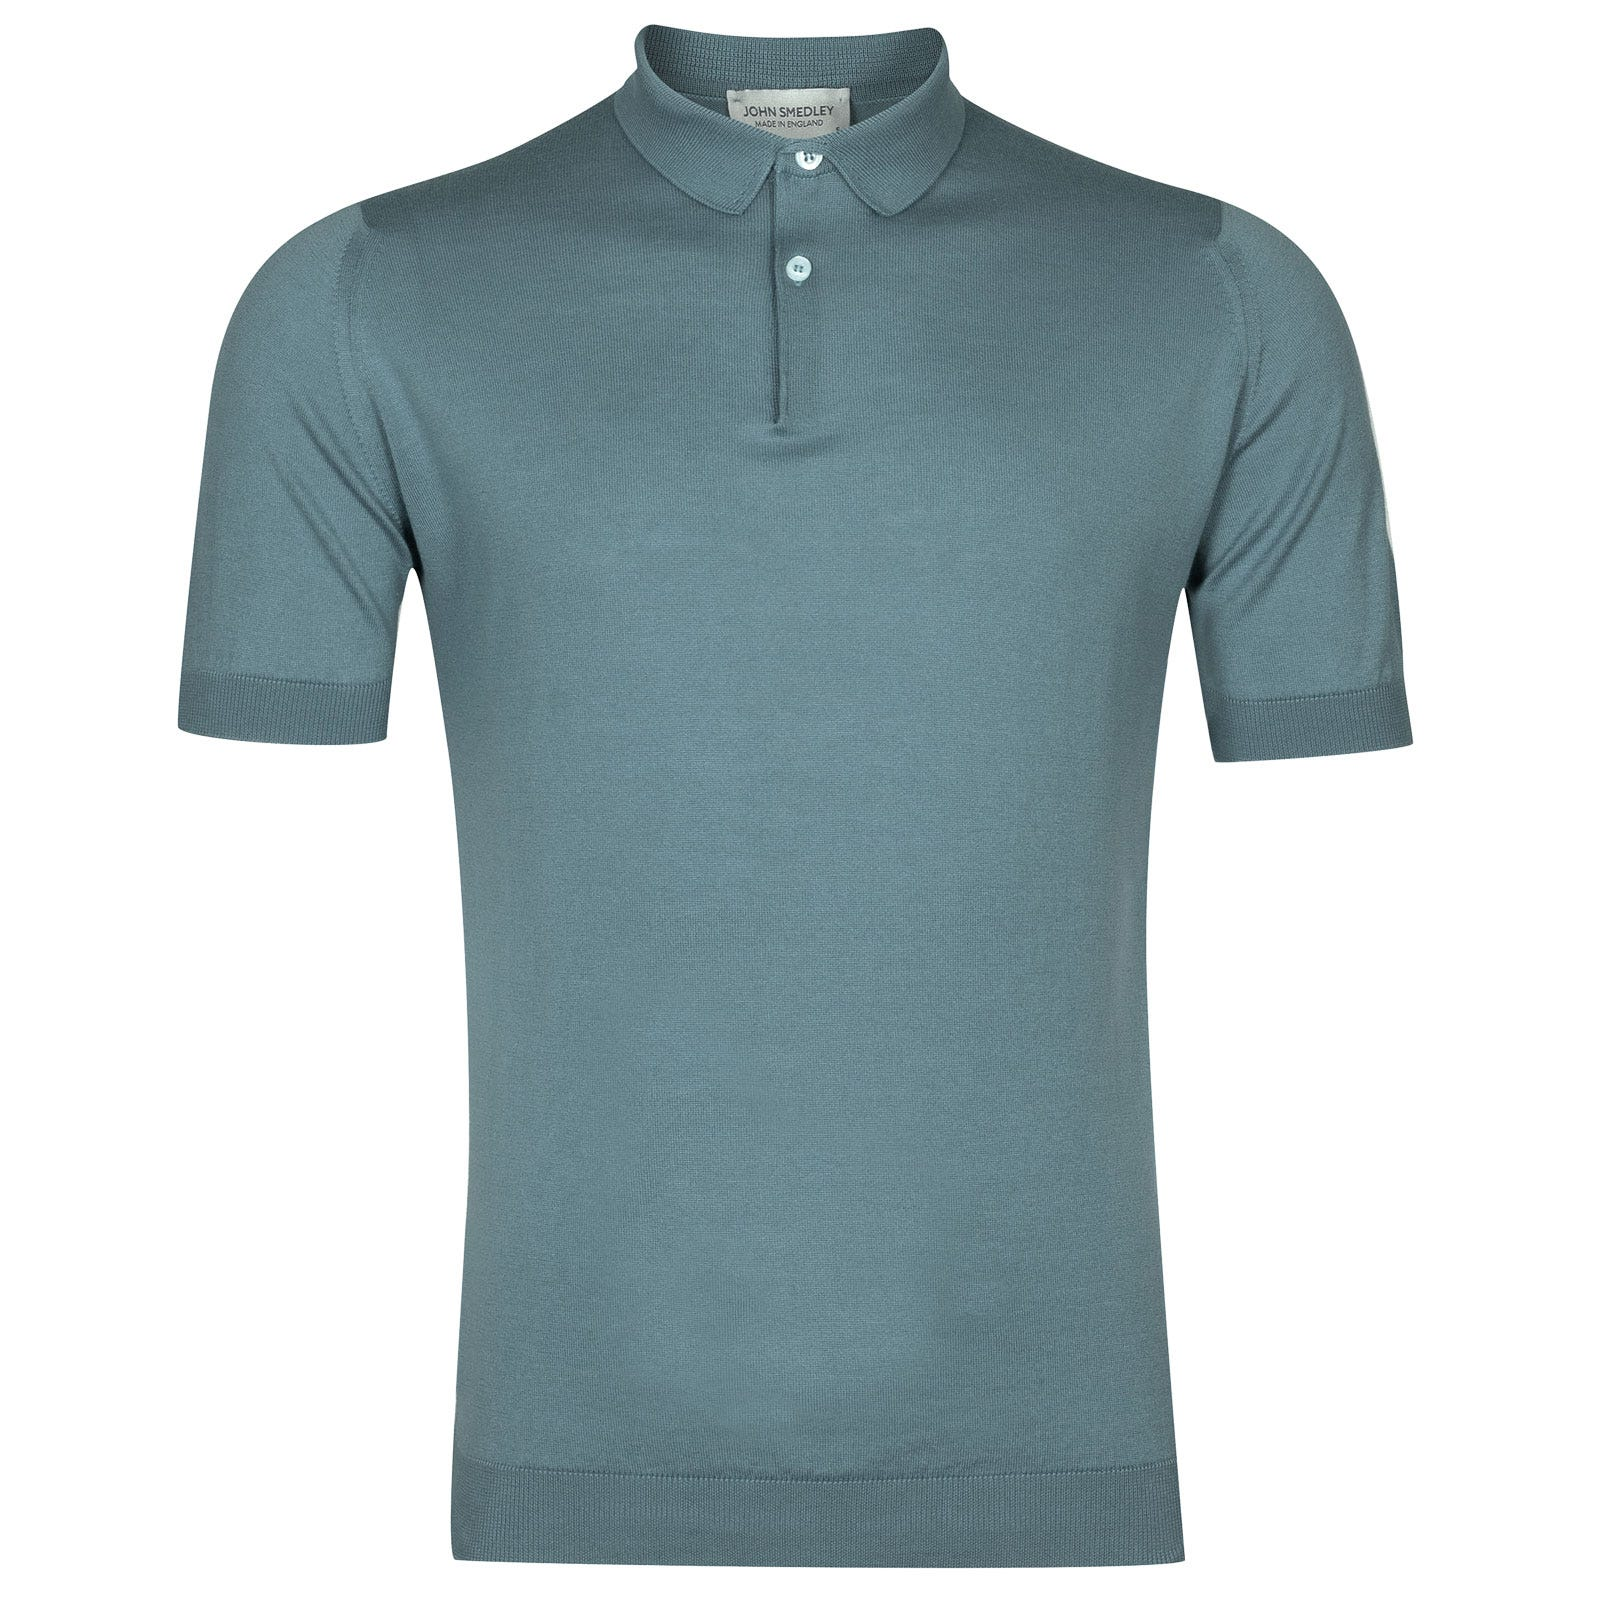 John Smedley rhodes Sea Island Cotton Shirt in Summit Blue-M